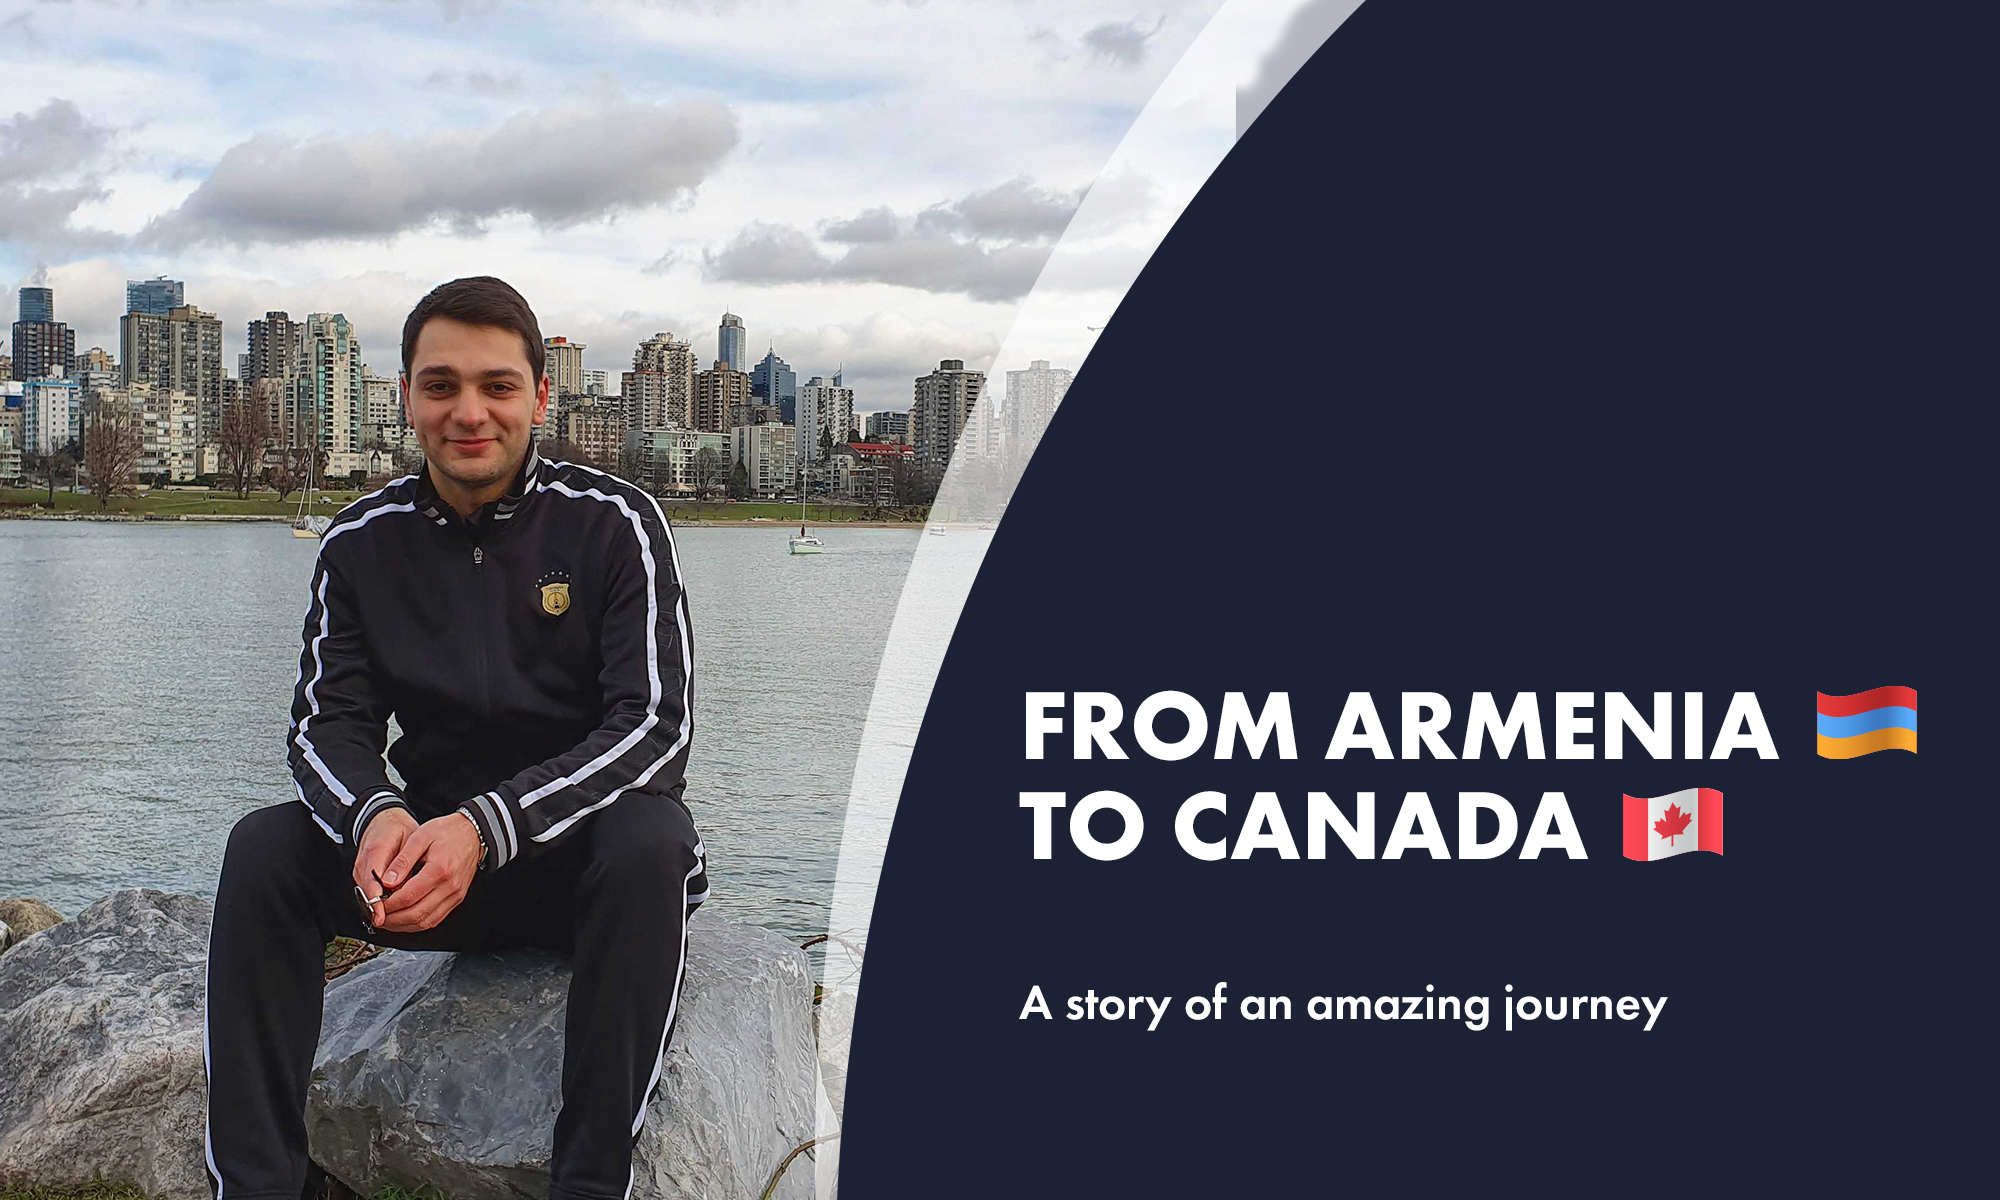 From Armenia to Canada. This is How an Amazing Journey Began